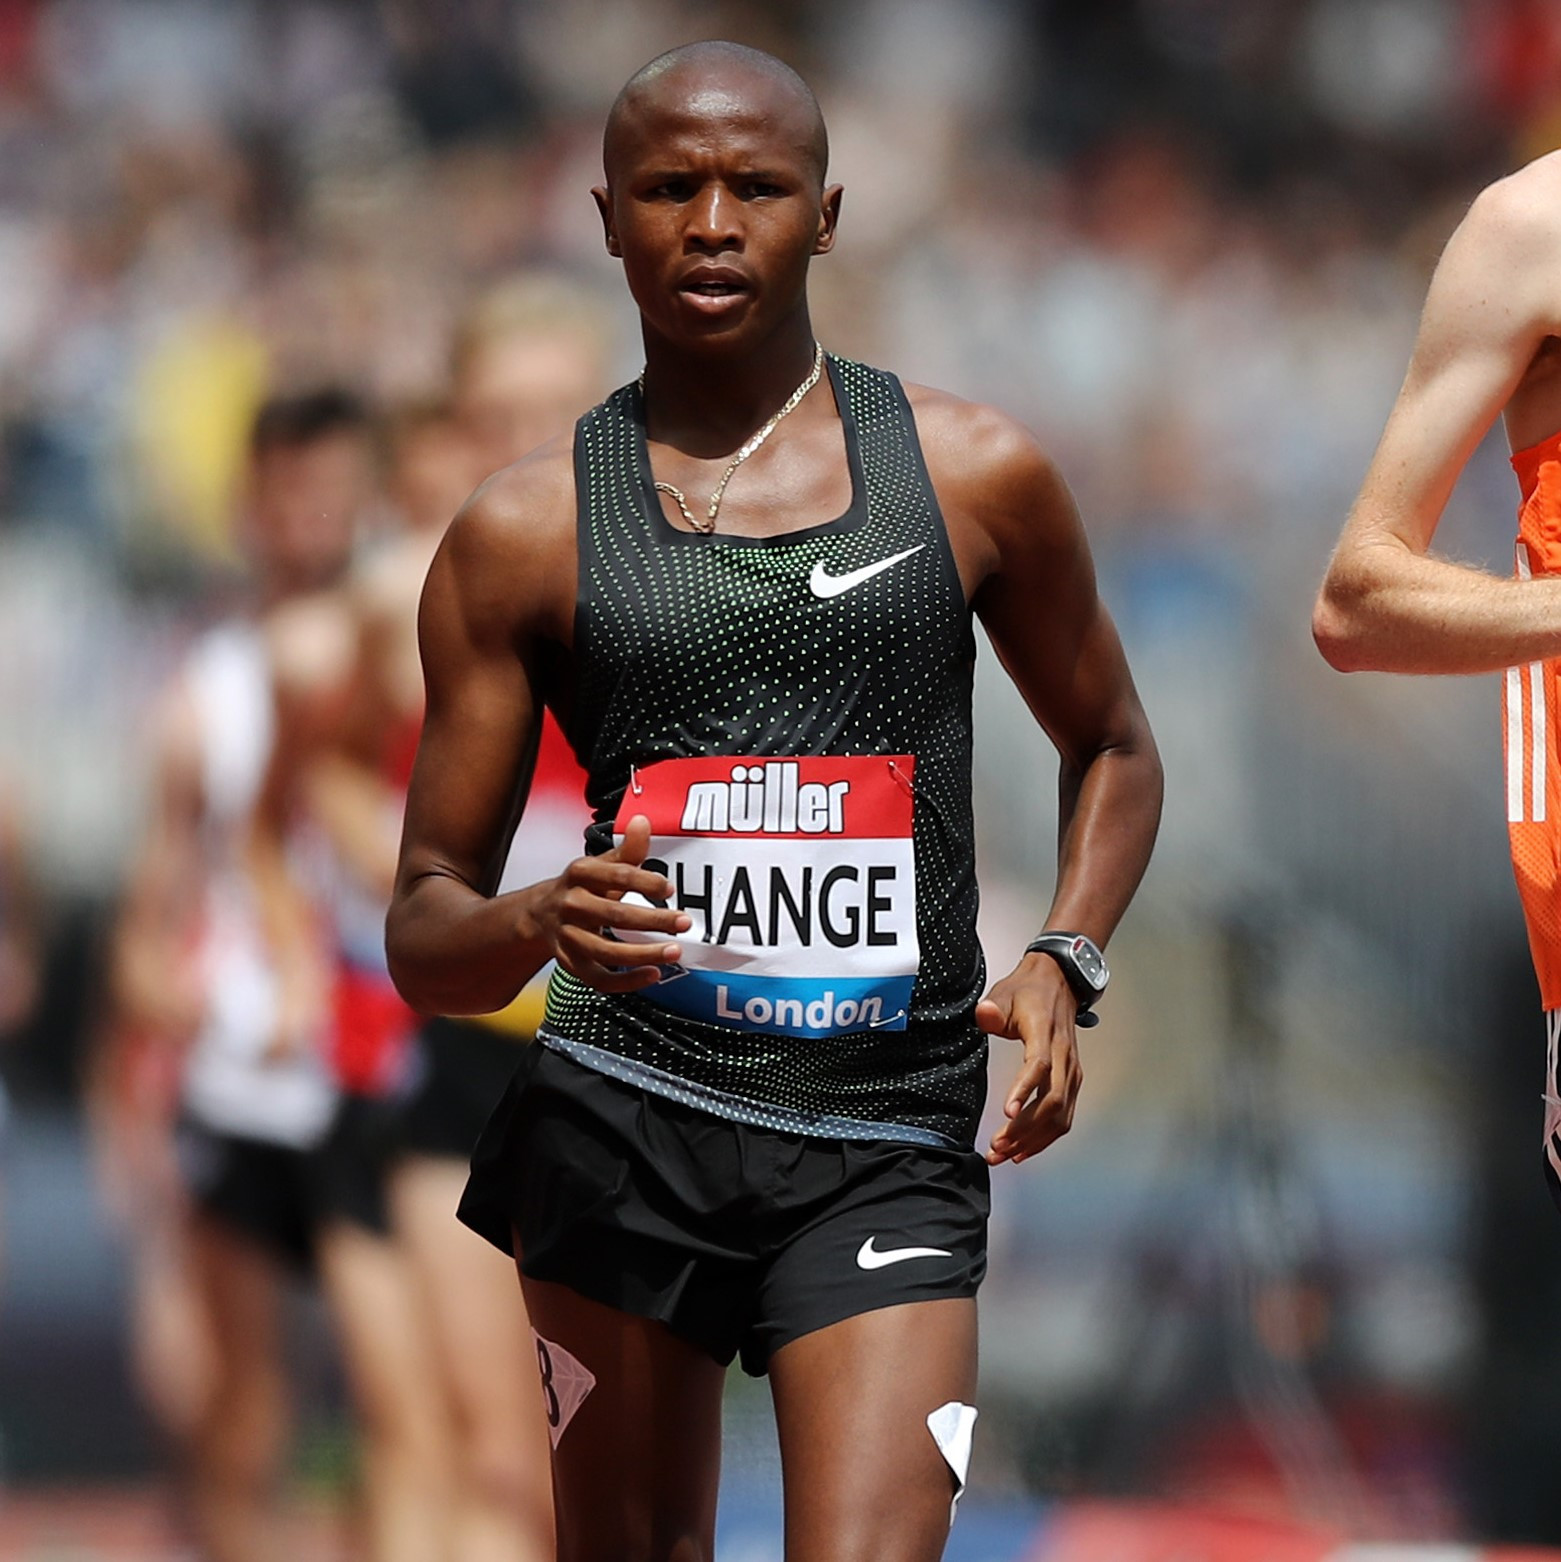 Race walker Shange to miss out on Tokyo 2020 after CAS upholds doping ban